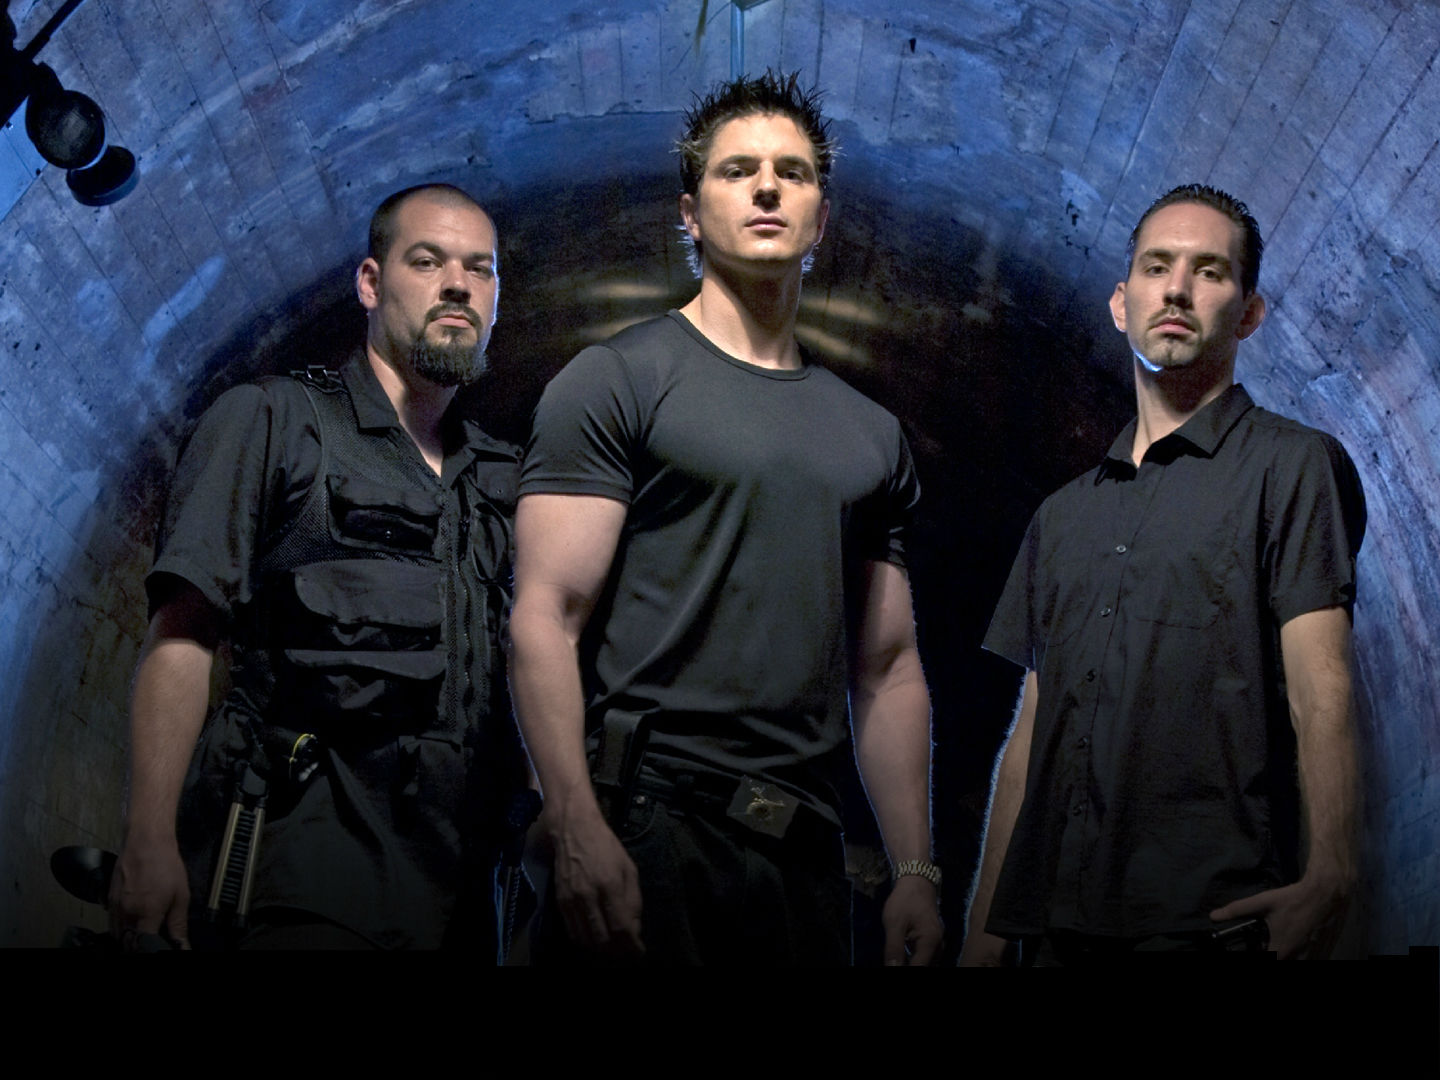 ghost adventures - Ghost Adventures Photo (32184334) - Fanpop